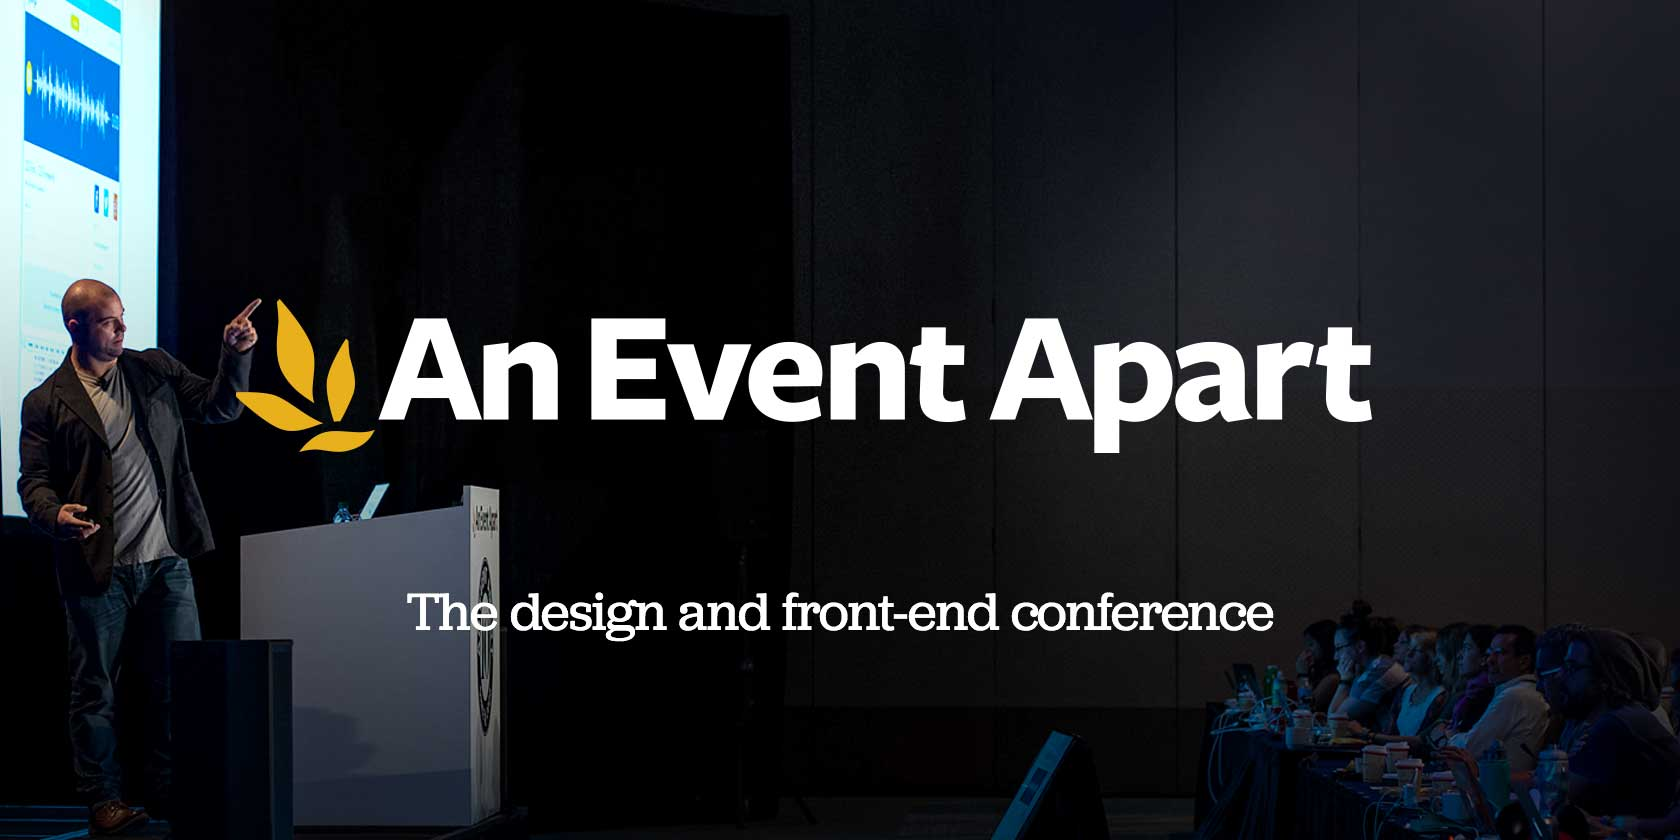 Not your father's design & front-end conference